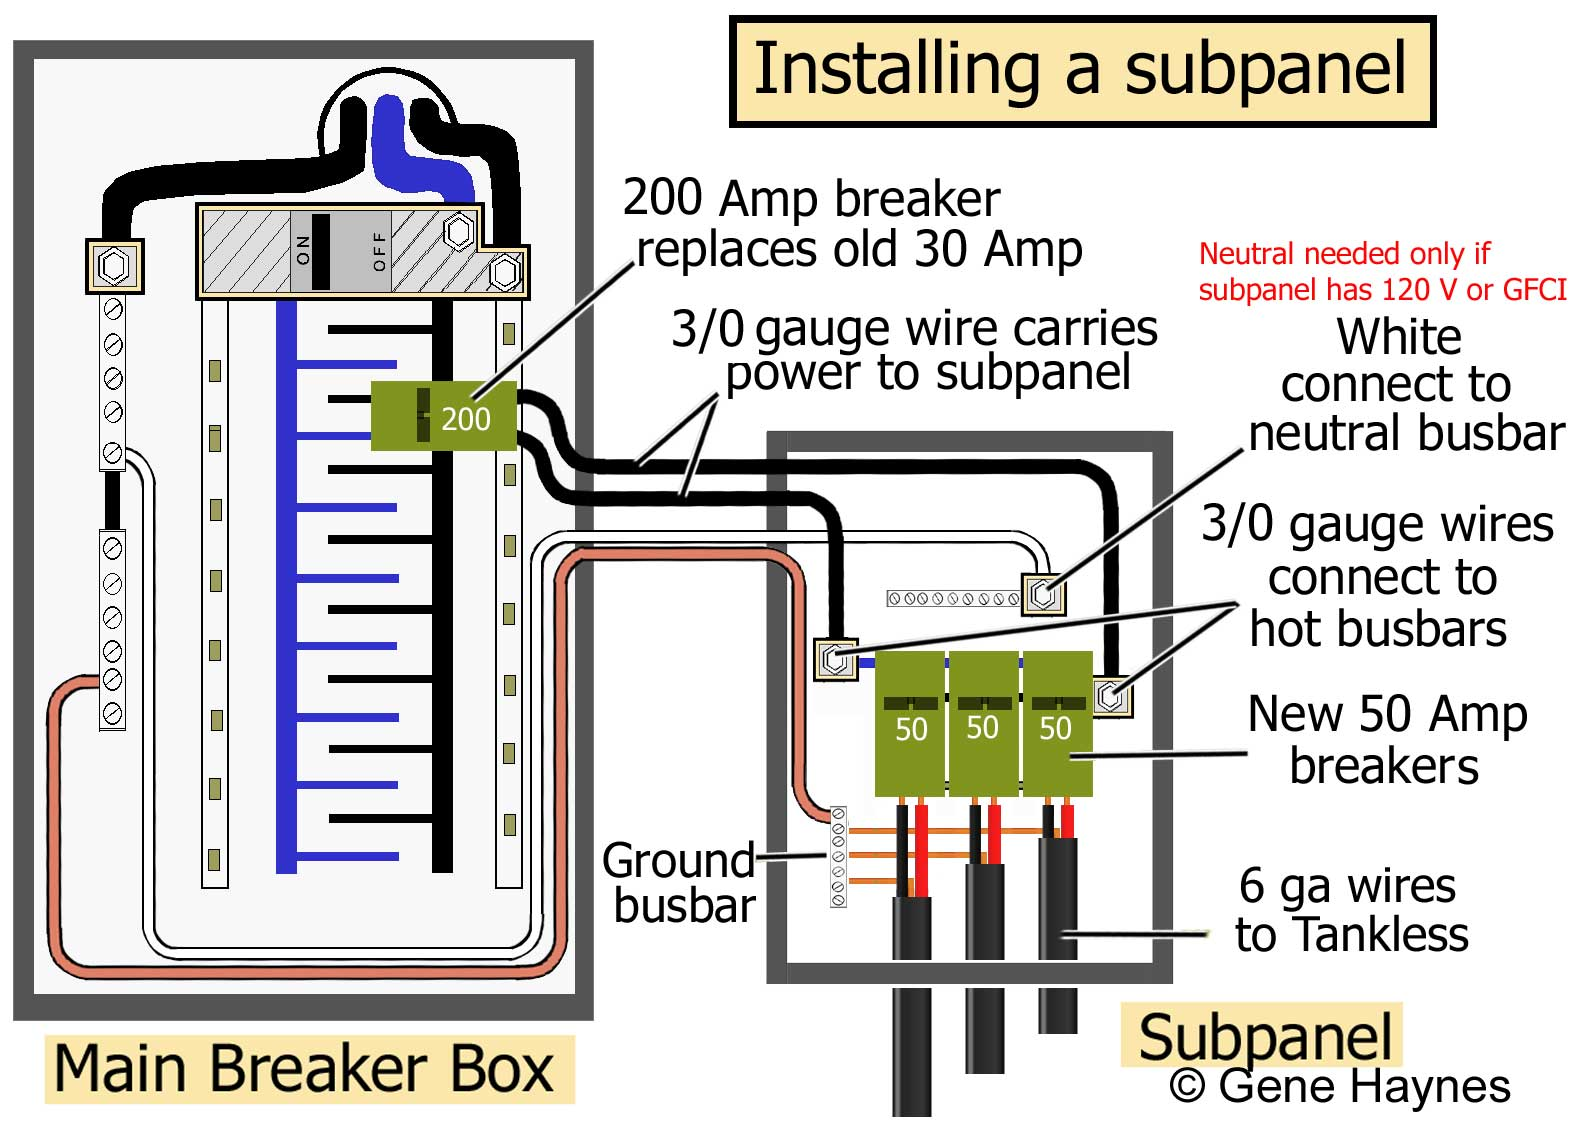 square d breaker box wiring diagram with 50   Sub Panel Wiring Diagram on Panel Schedule Template moreover 50311159 together with Murray Breaker Panel Wiring Diagram together with 202290783 besides Sub Panel Install Main Panel Full.